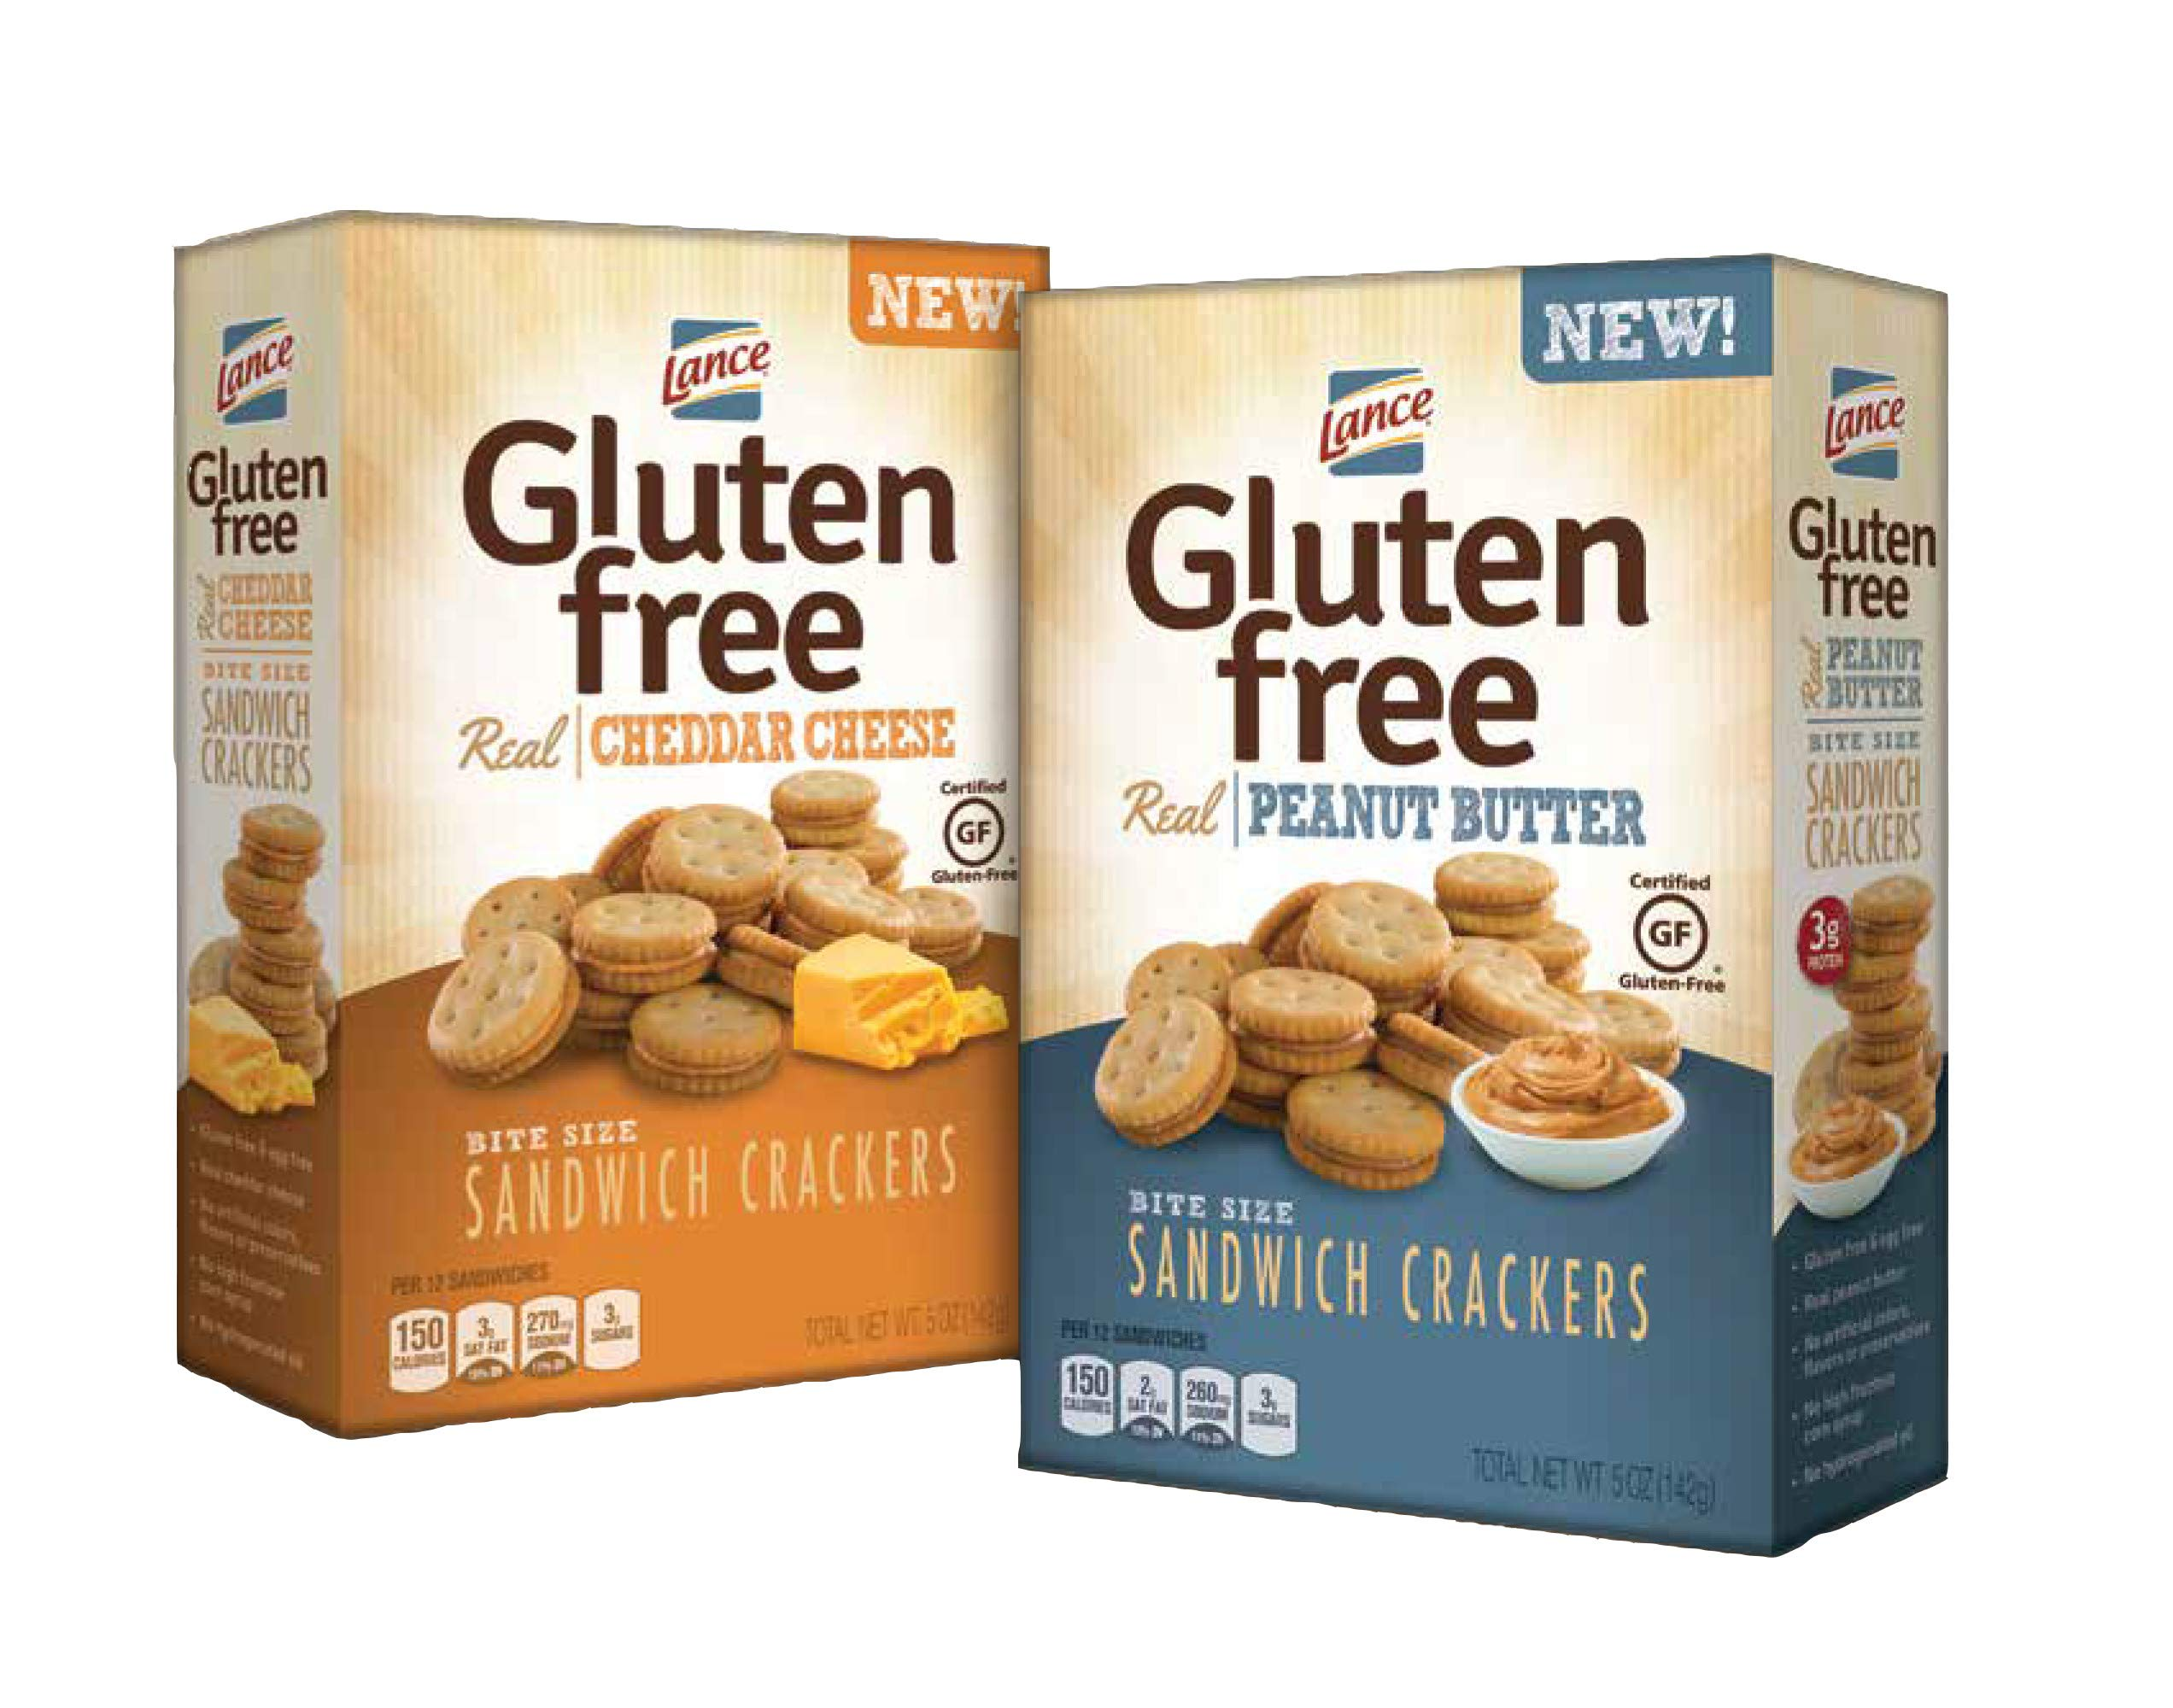 Amazon.com: Van's Simply Delicious Gluten-Free Crackers